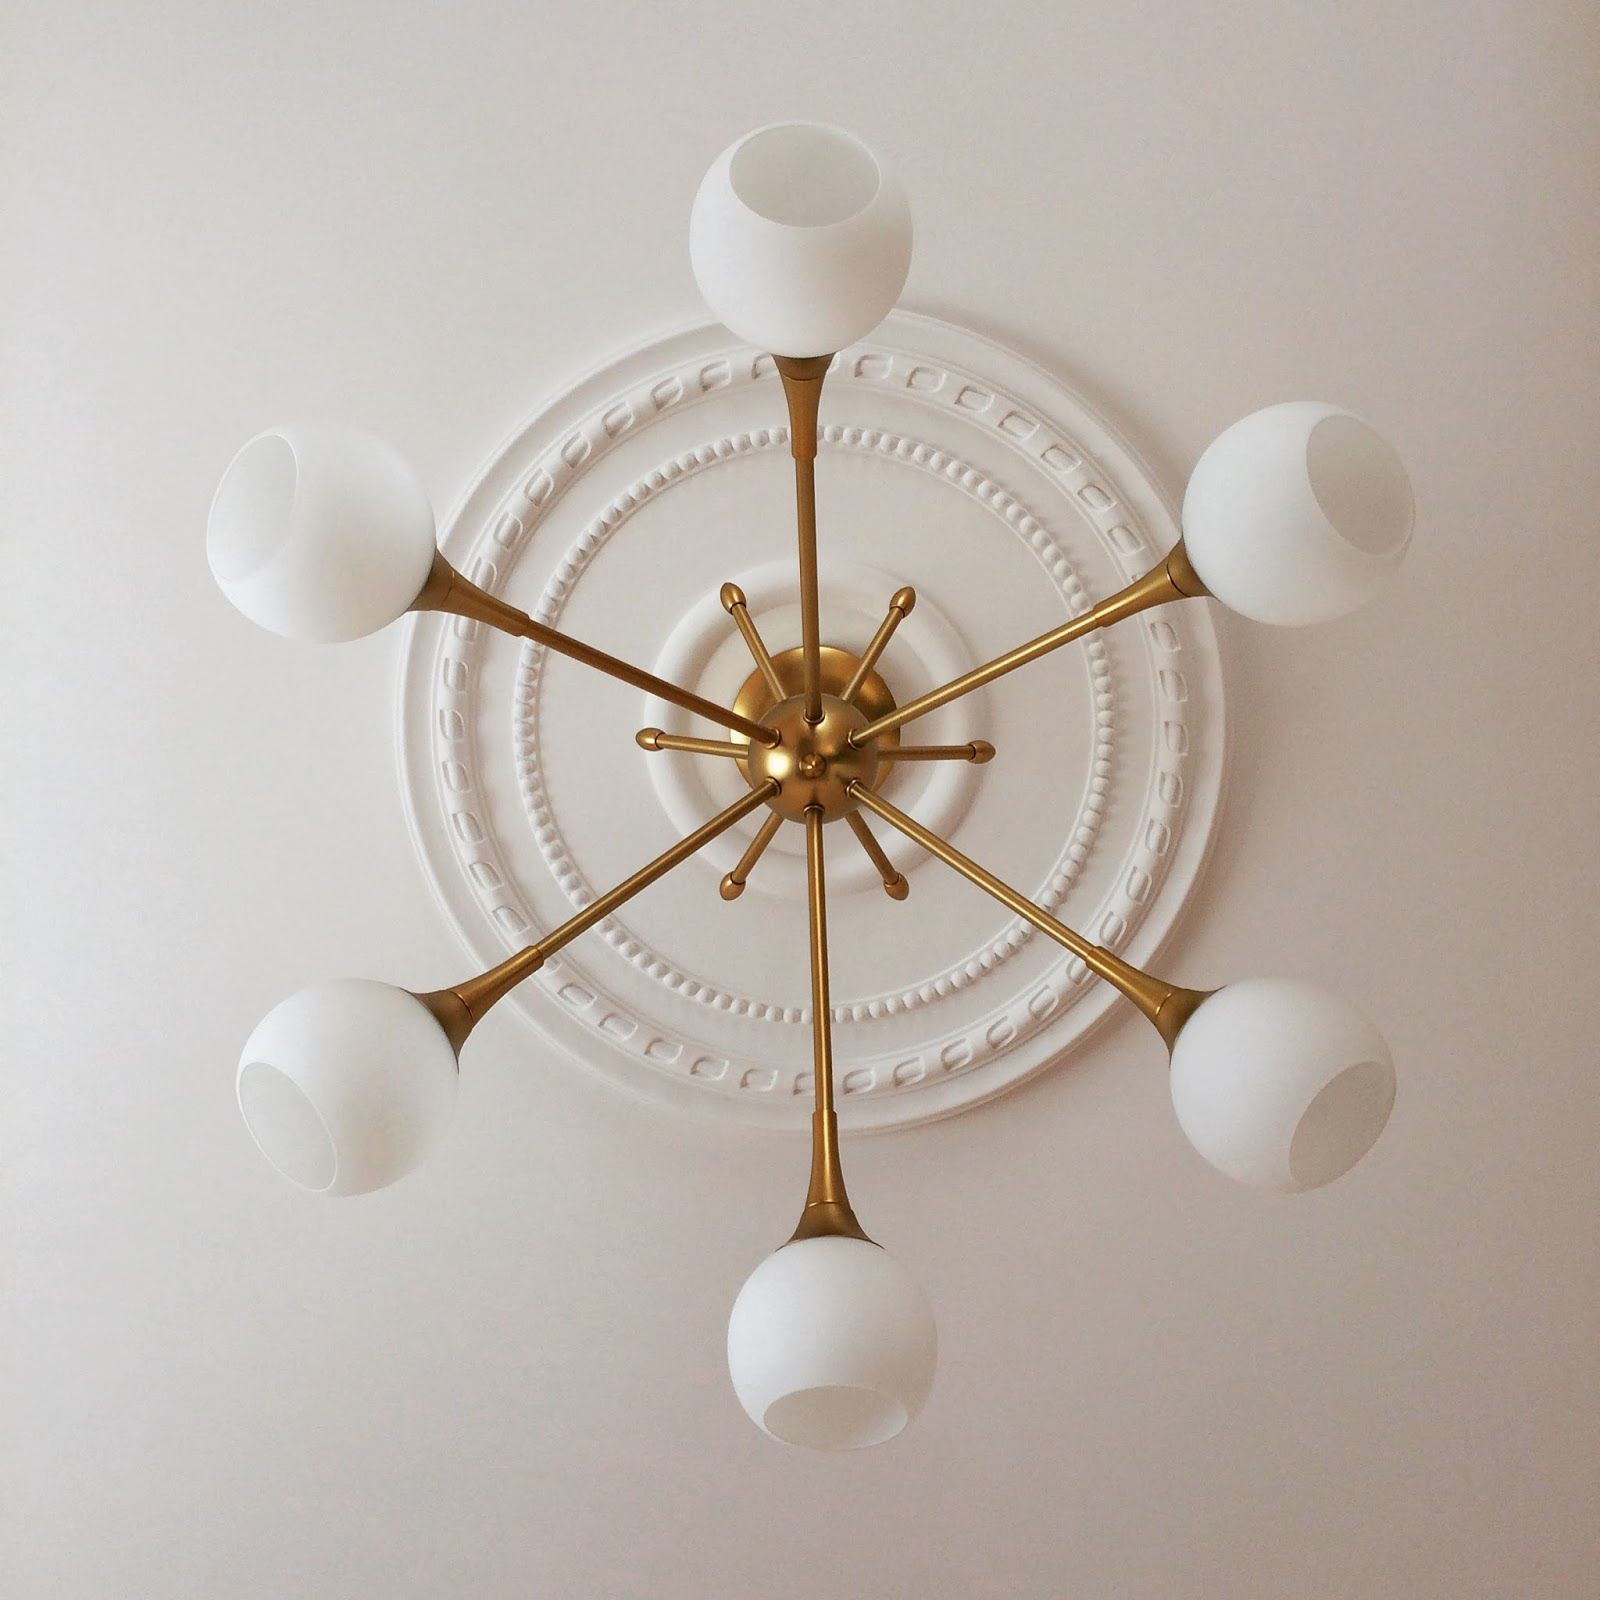 light fan fans x medallions of fixture for photo ceiling trim ceilings image medalions ring plate medallion